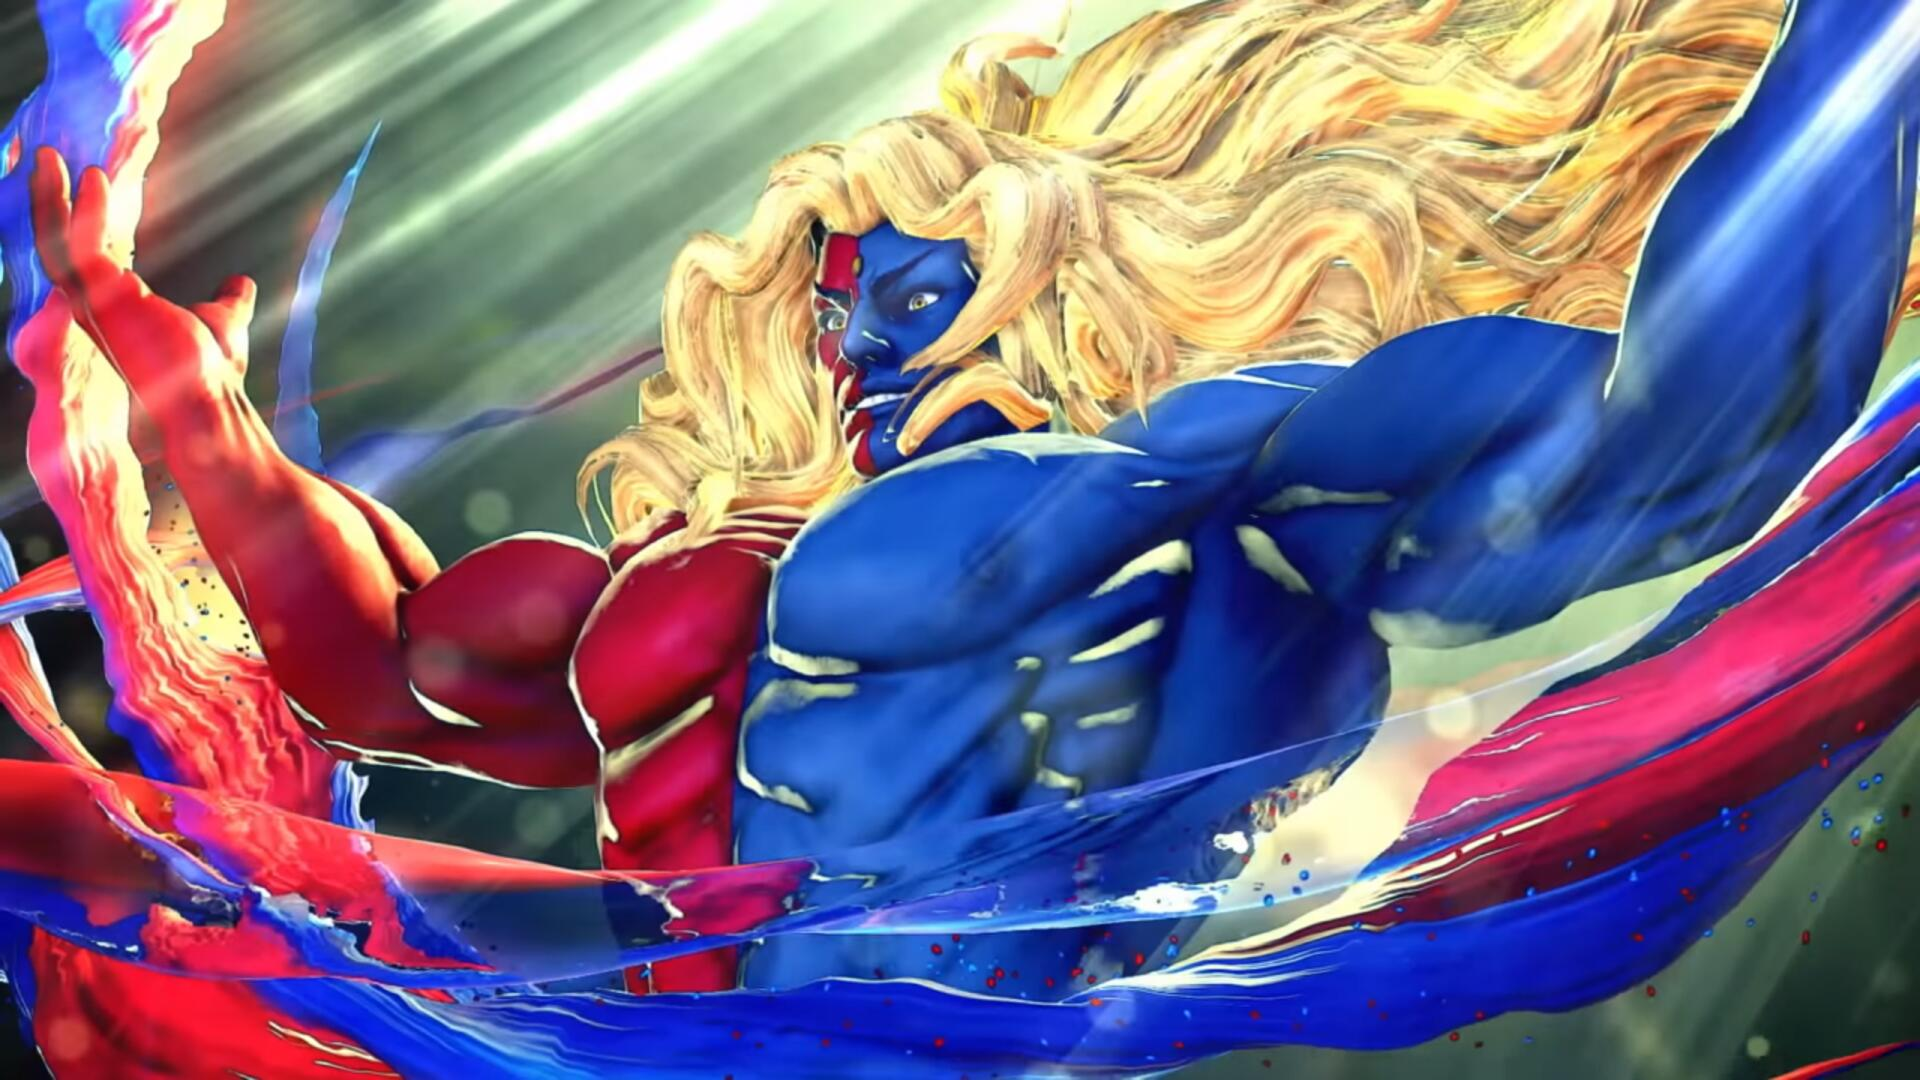 Street Fighter 5 is Getting a Champion Edition With Every Fighter So Far